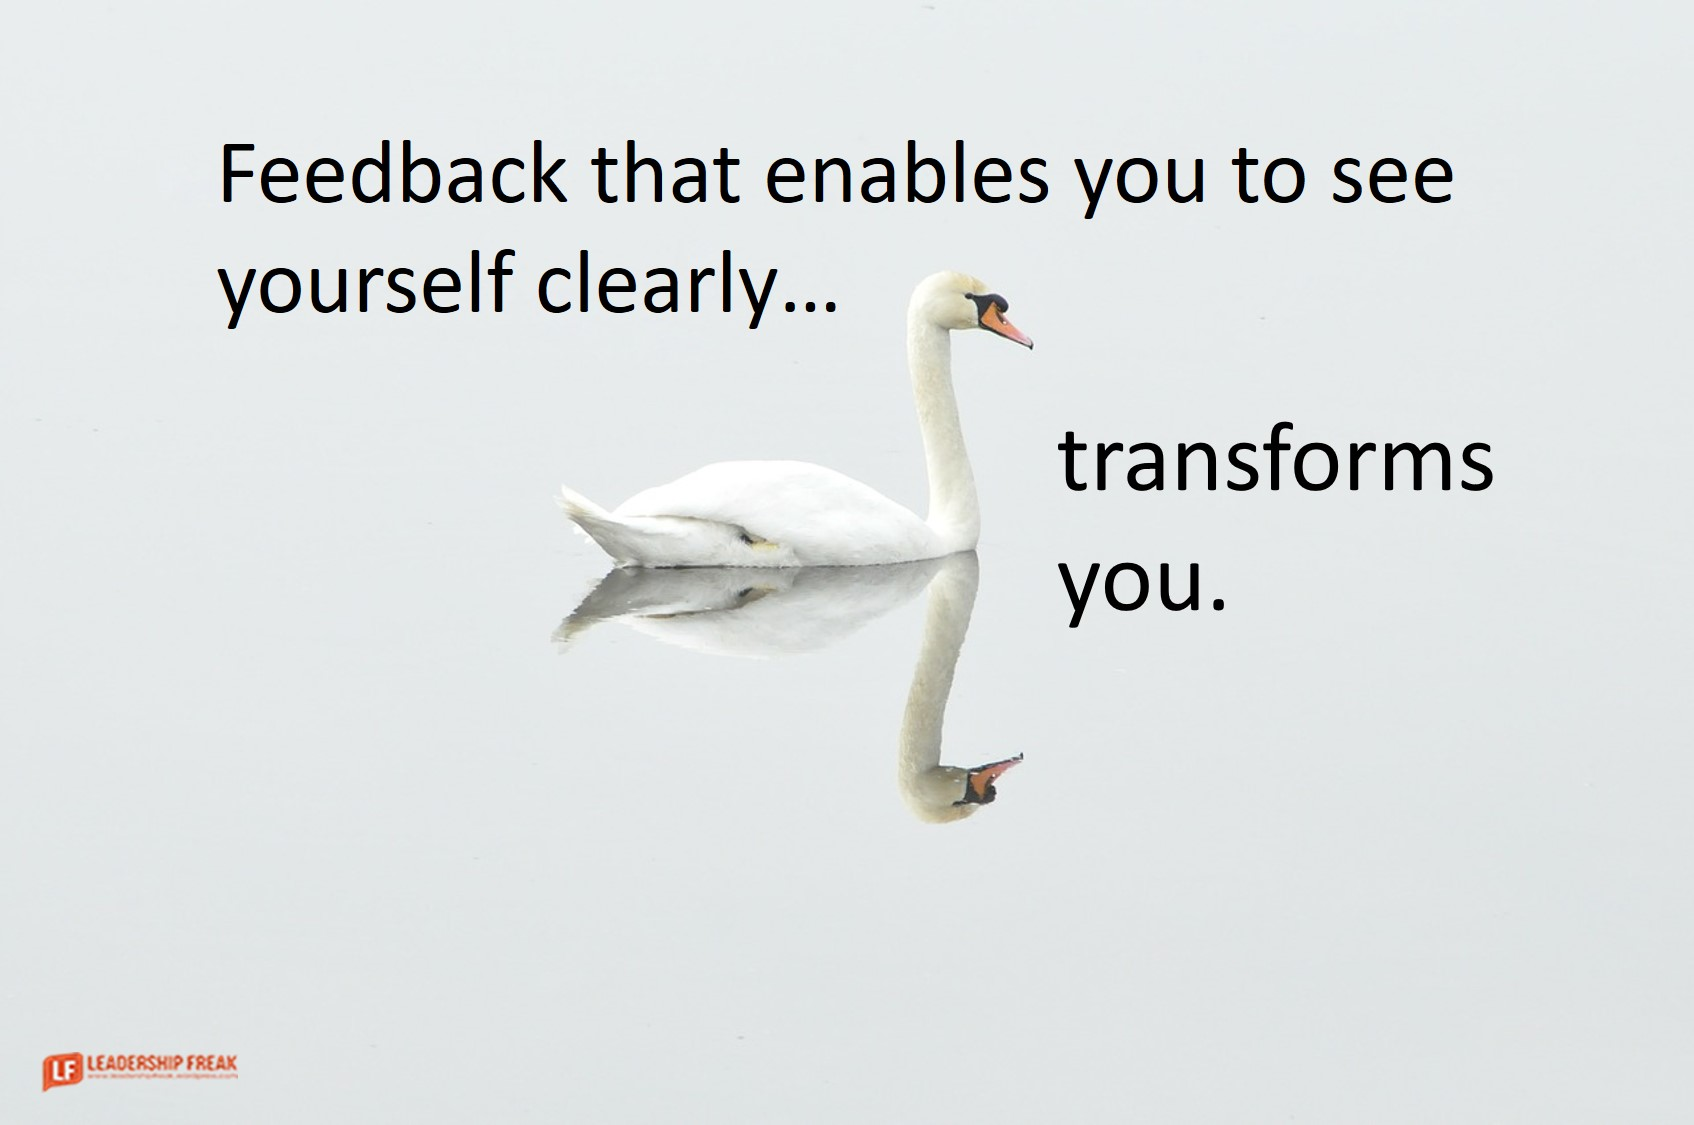 Swan. Reflection.  Feedback that enables you to see yourself clearly transforms you.